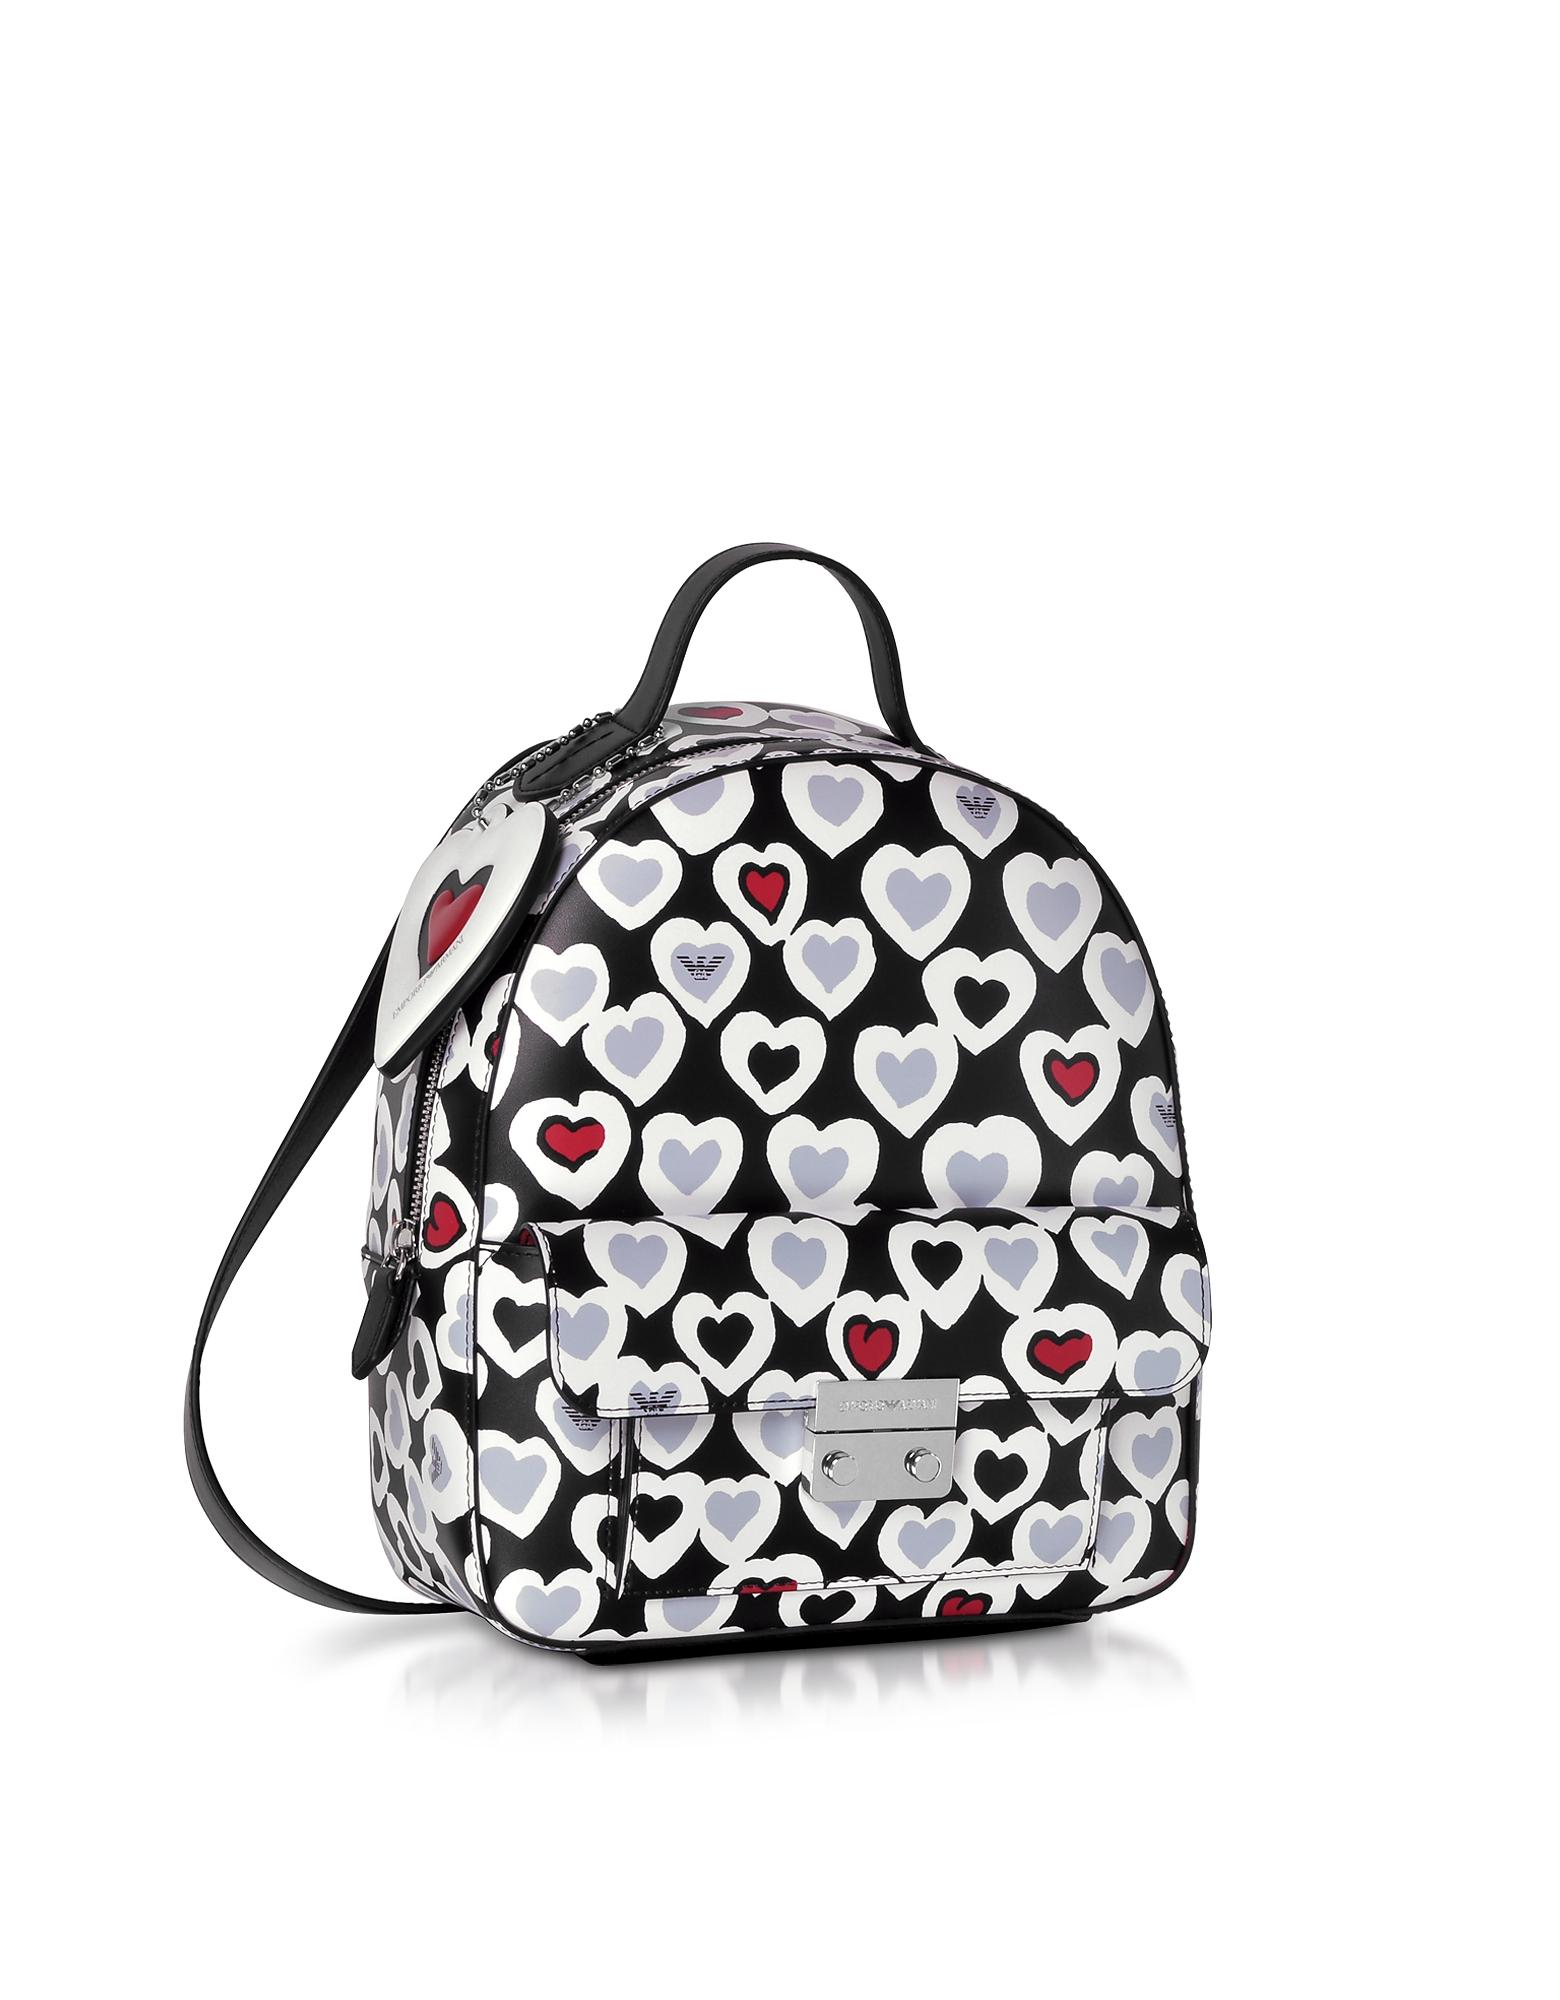 6a00b5093b95 Emporio Armani Heart Print Medium Backpack in Black - Lyst